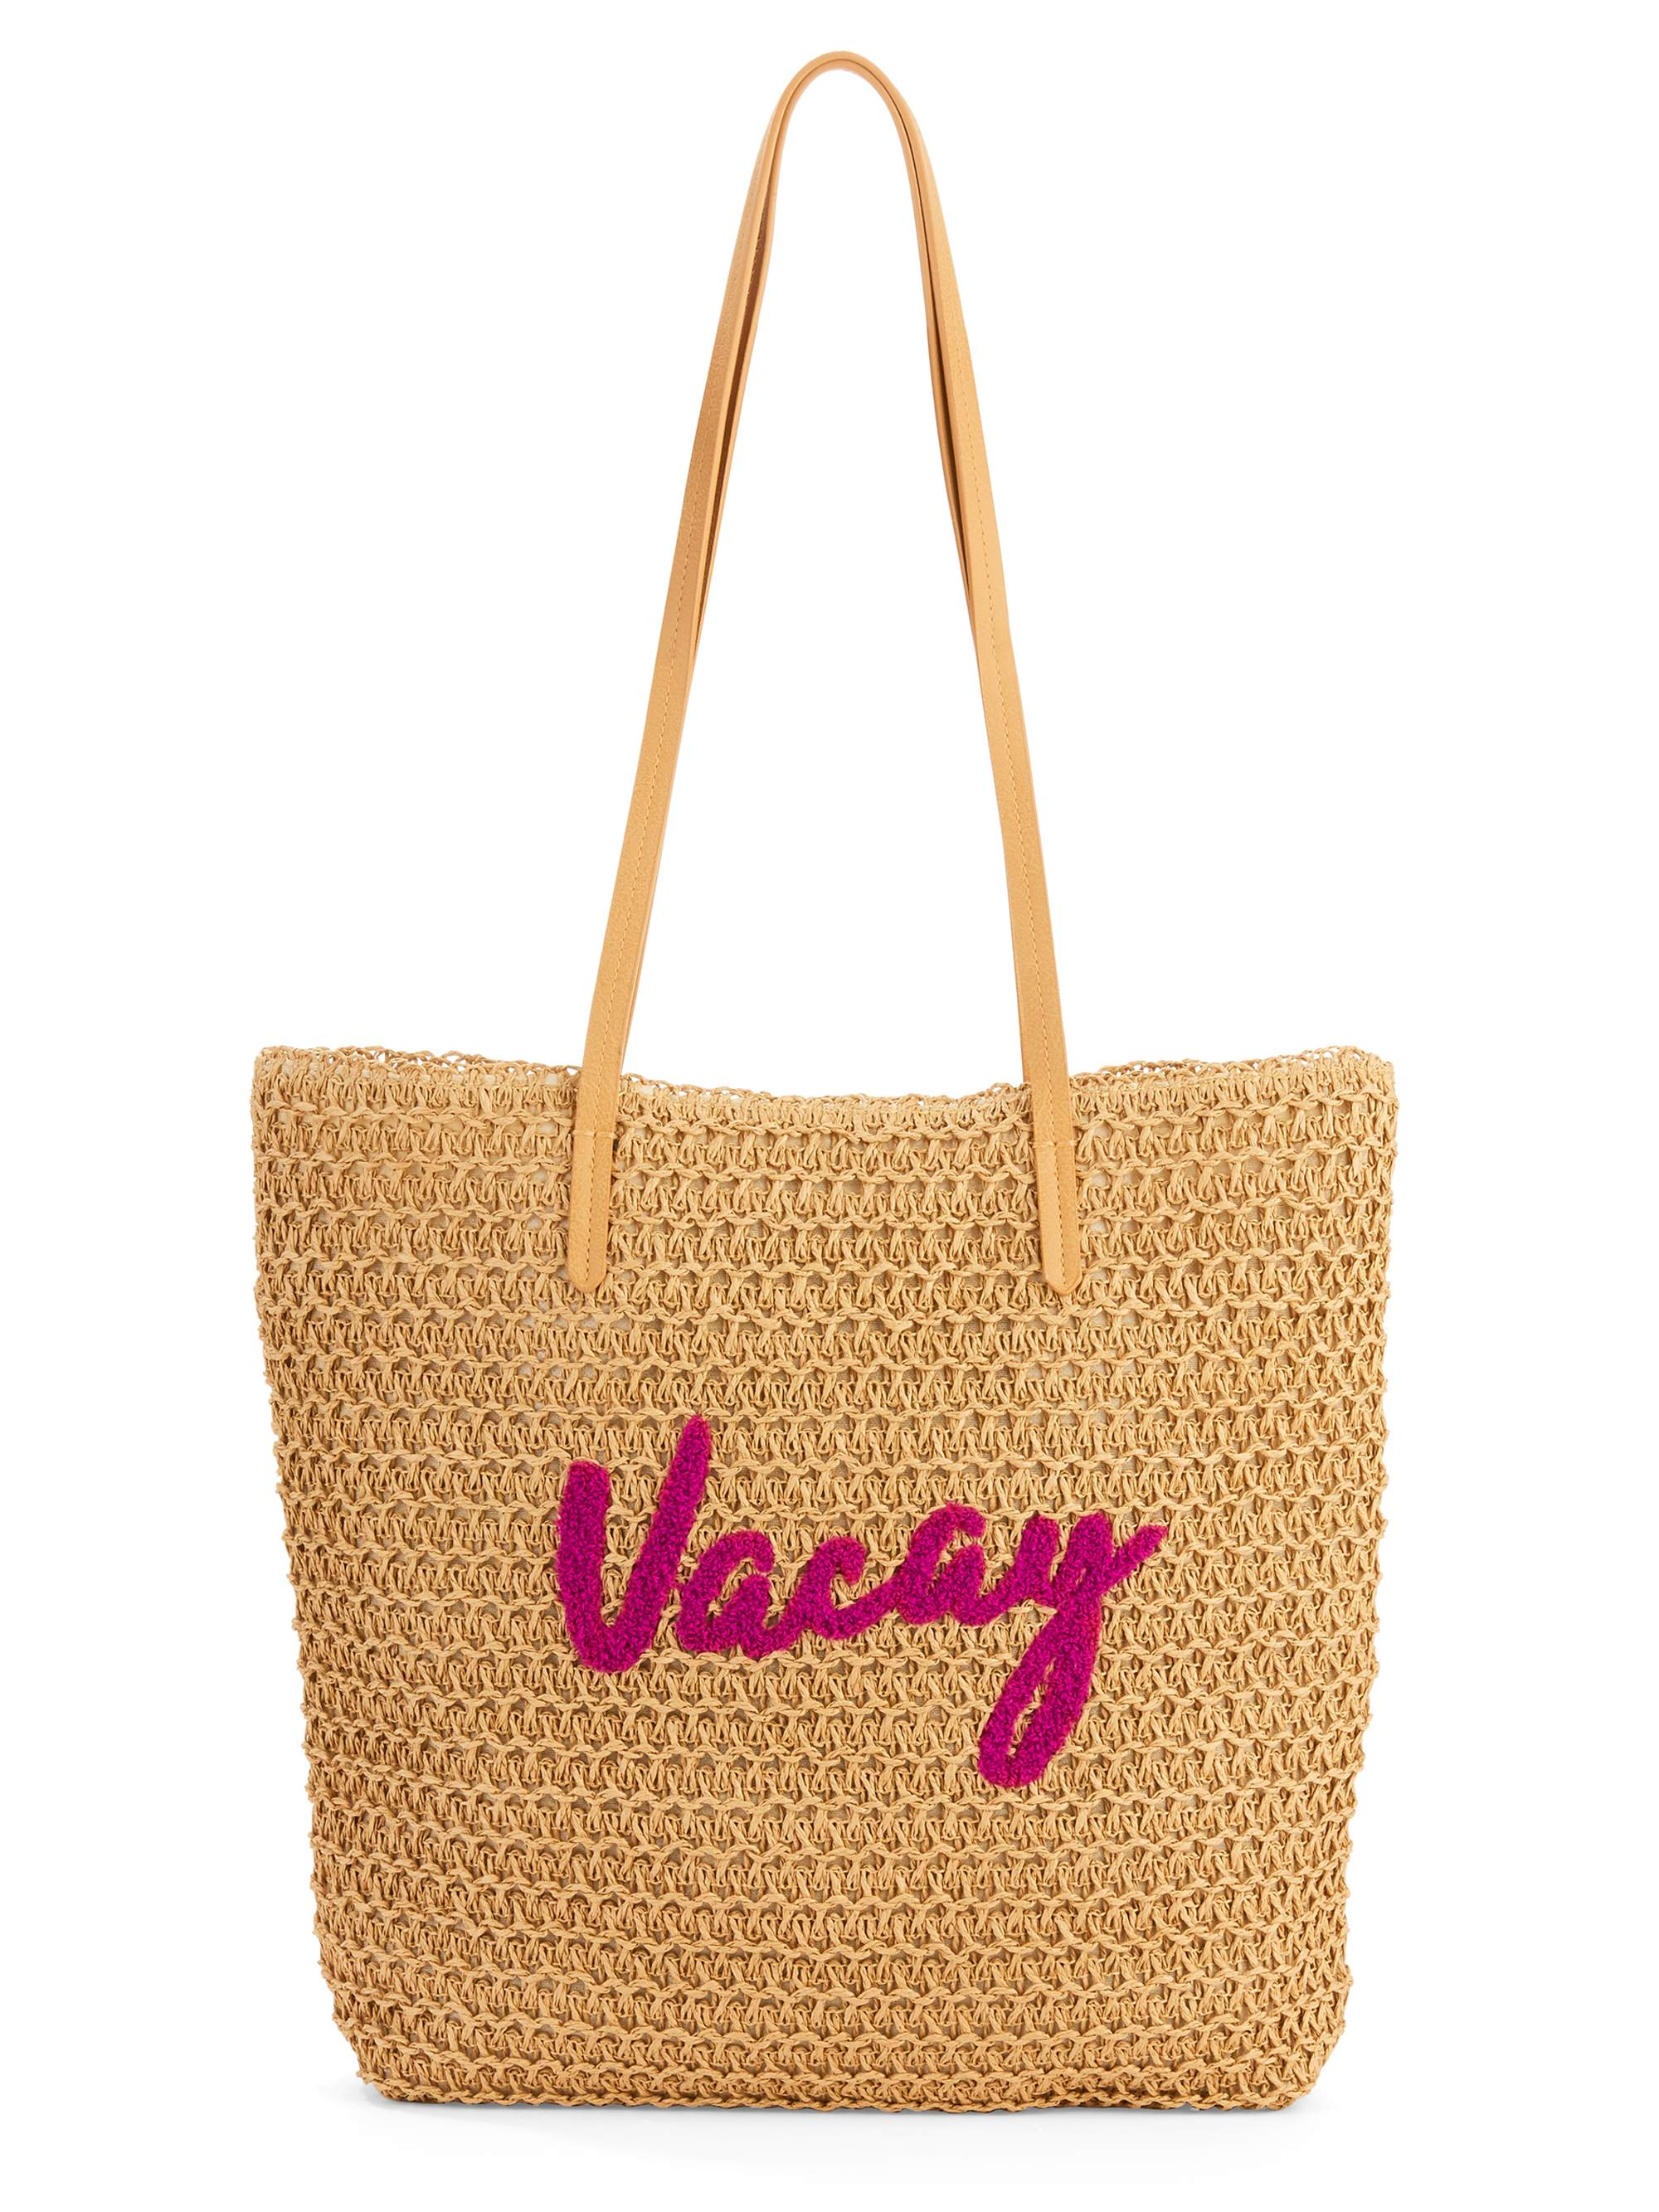 "Time & Tru ""Vacay"" Packable Straw Tote"